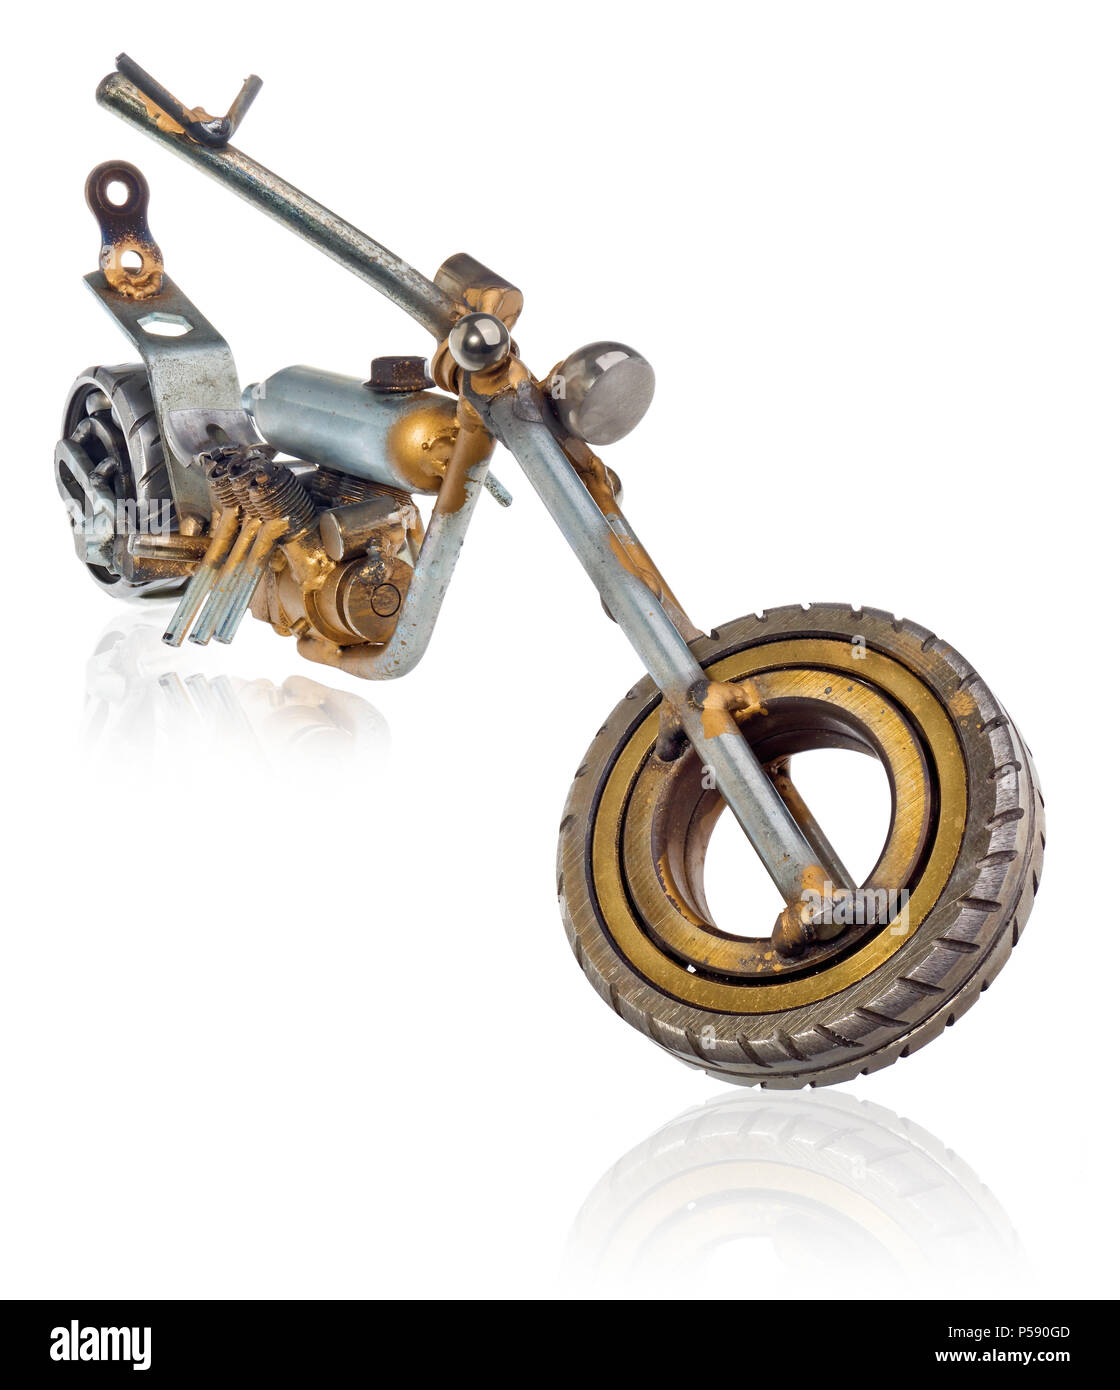 Handmade miniature of a chopper motorcycle. Decorative vehicle made of mechanical parts, bearings, wires, car candles, screws, plates. Toy in silver-g Stock Photo